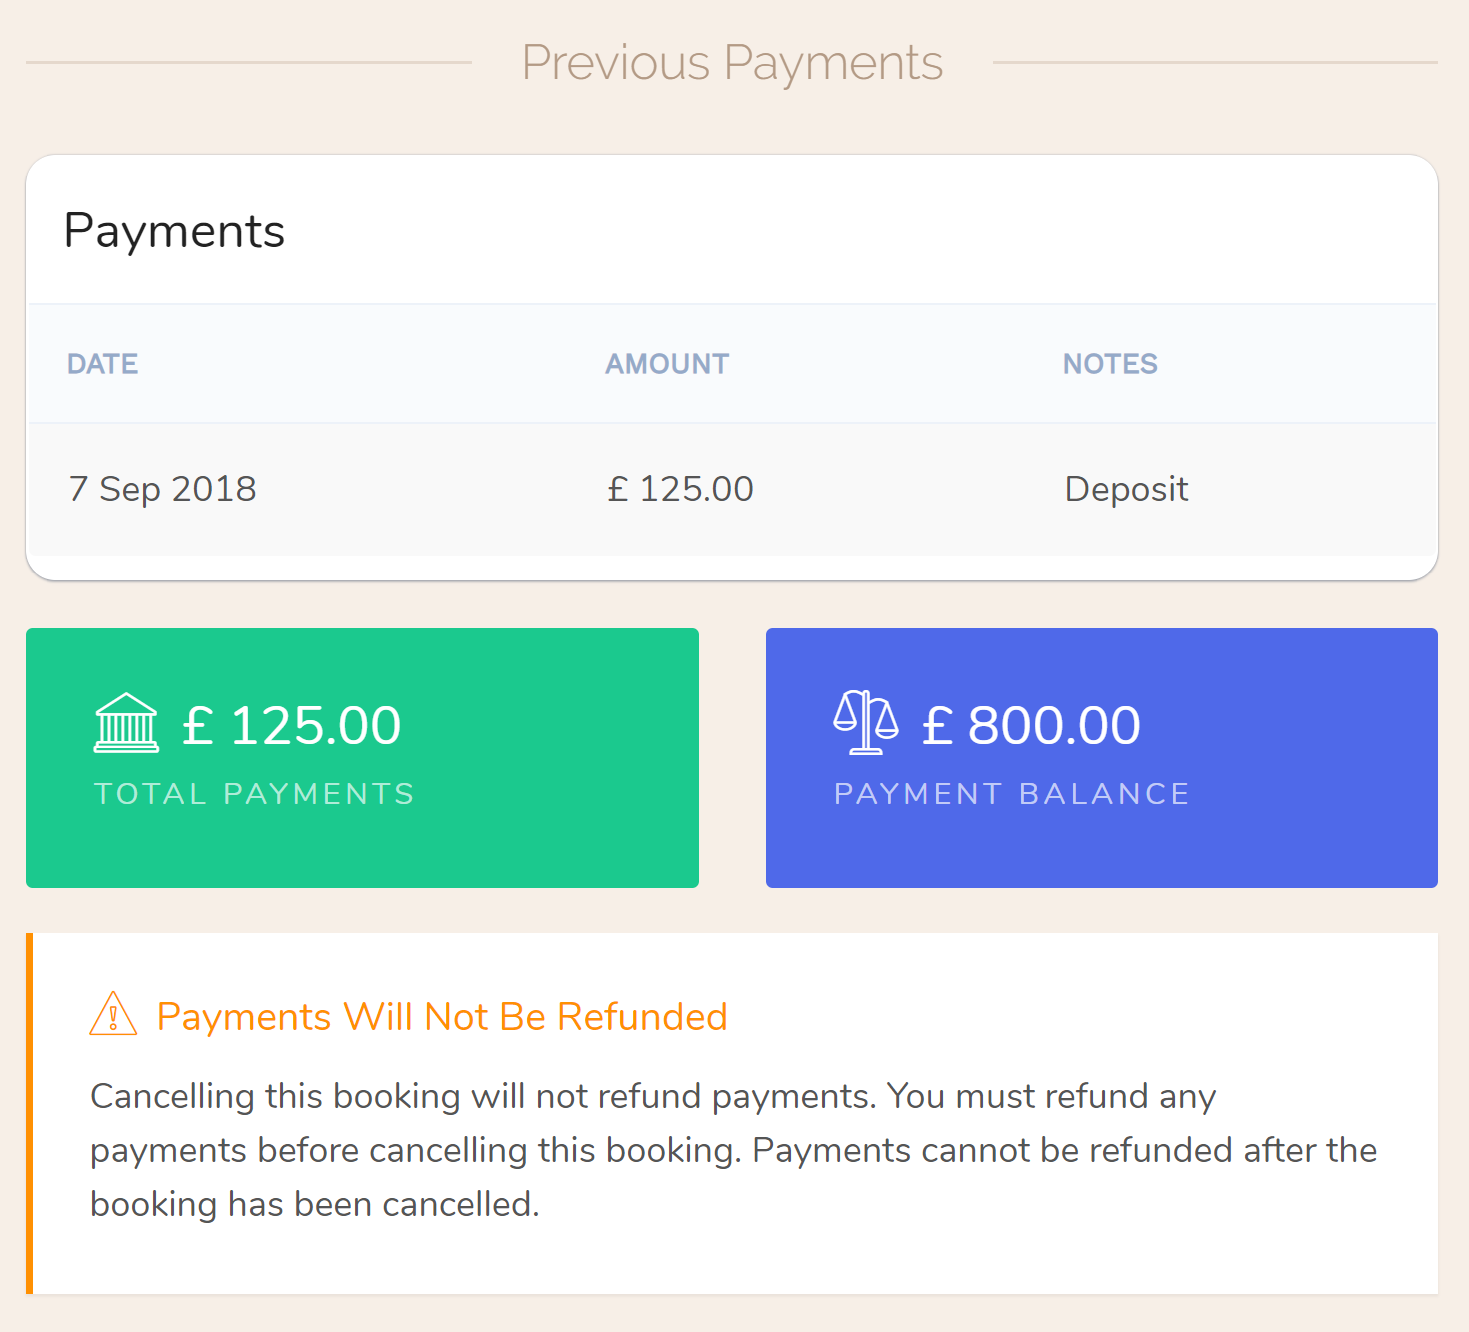 Payments are not refunded when a booking is cancelled or deleted, and refunds can only be processed while the booking is active. Refunds are not available once a booking has been checked out or cancelled (i.e., the booking has been closed out). If you need to cancel a booking and return a payment, make sure you refund any payments BEFORE you cancel the booking, Hotel PMS Software